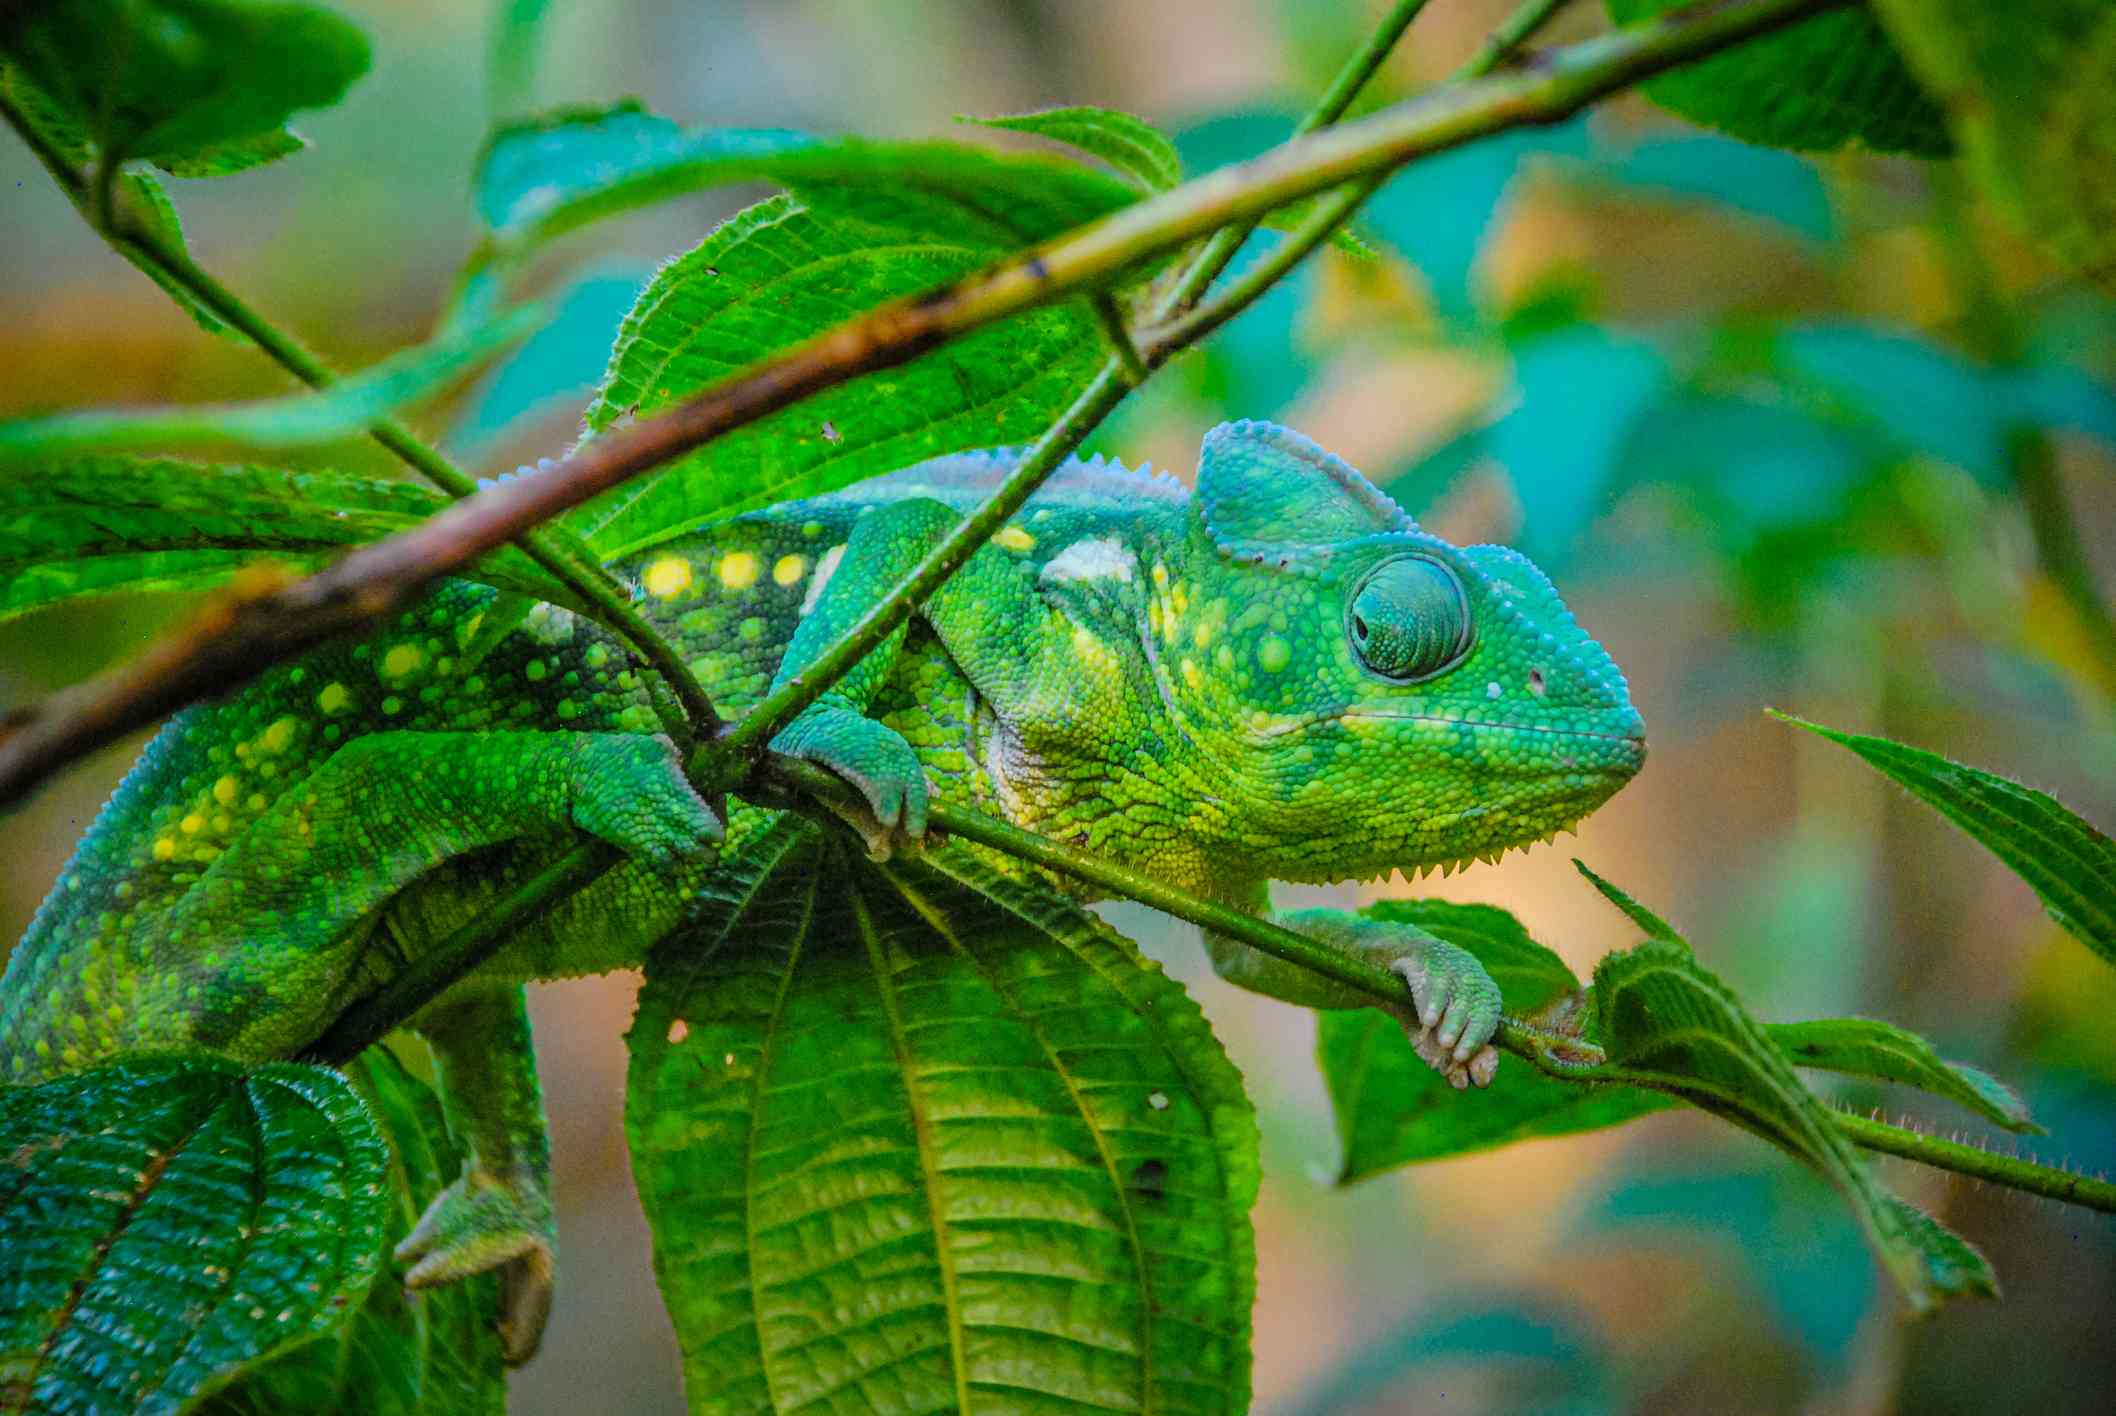 green and blue chameleon climbs through tree branches with matching colors